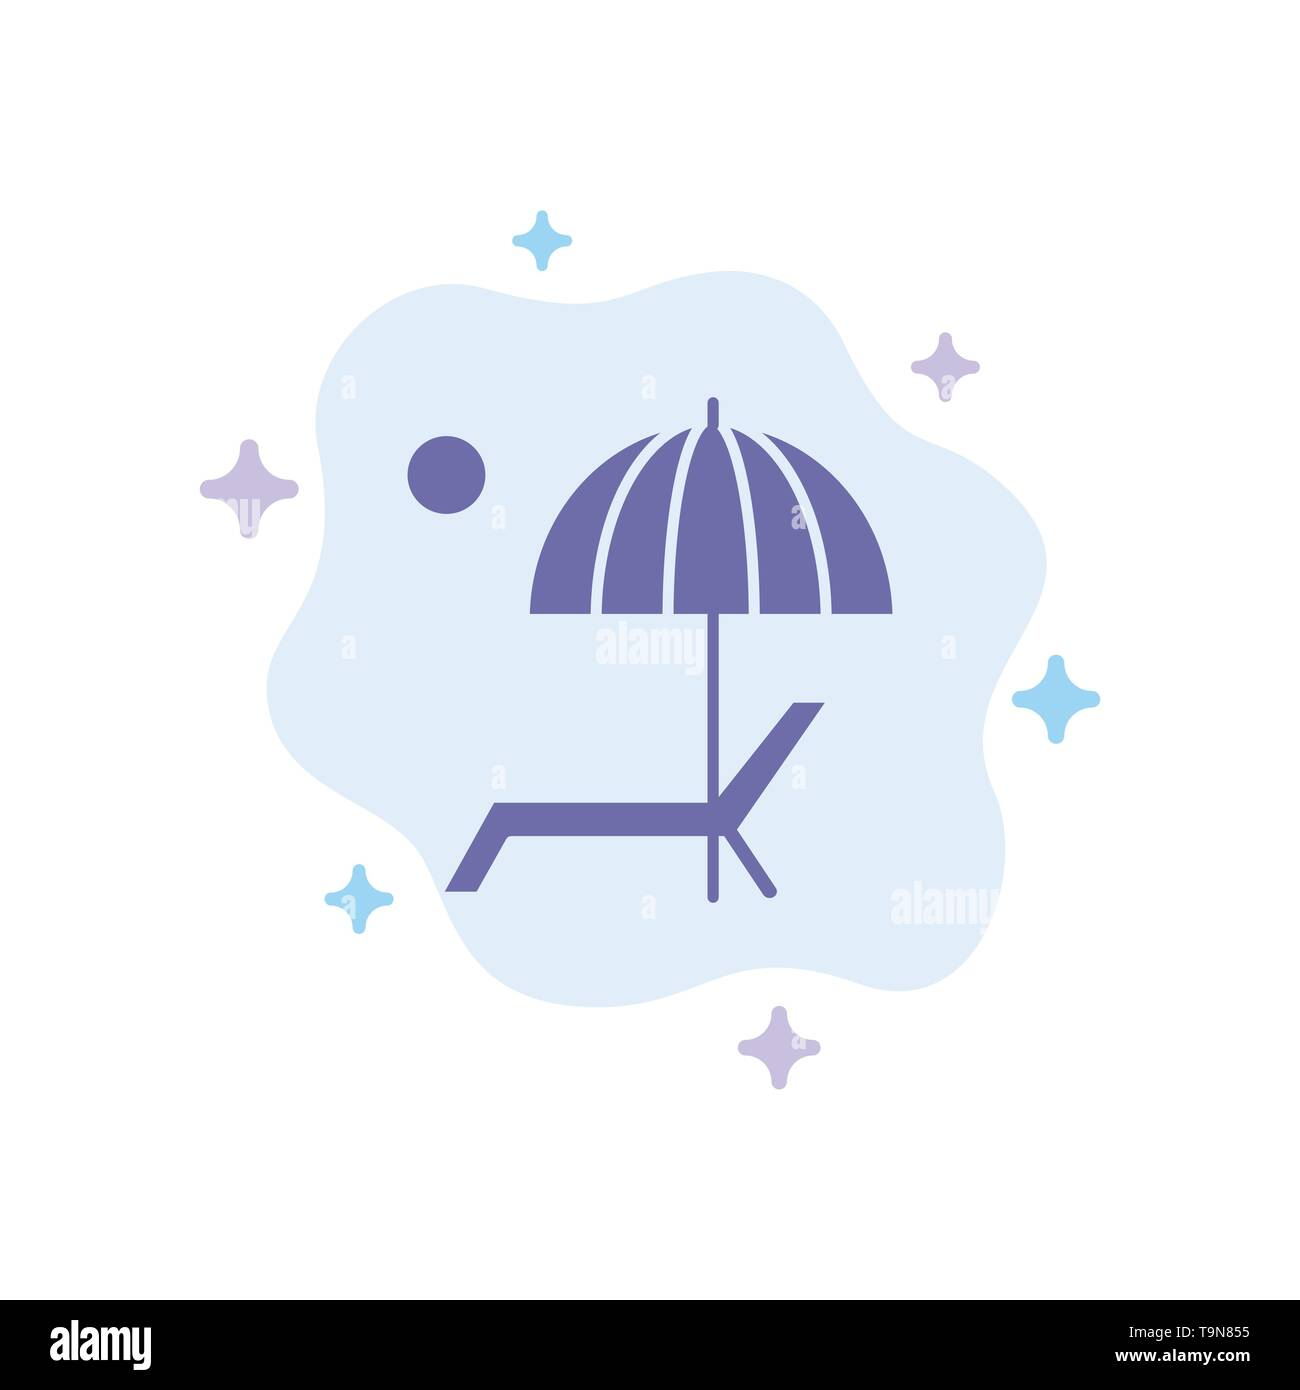 Beach, Umbrella, Bench, Enjoy, Summer Blue Icon on Abstract Cloud Background - Stock Image